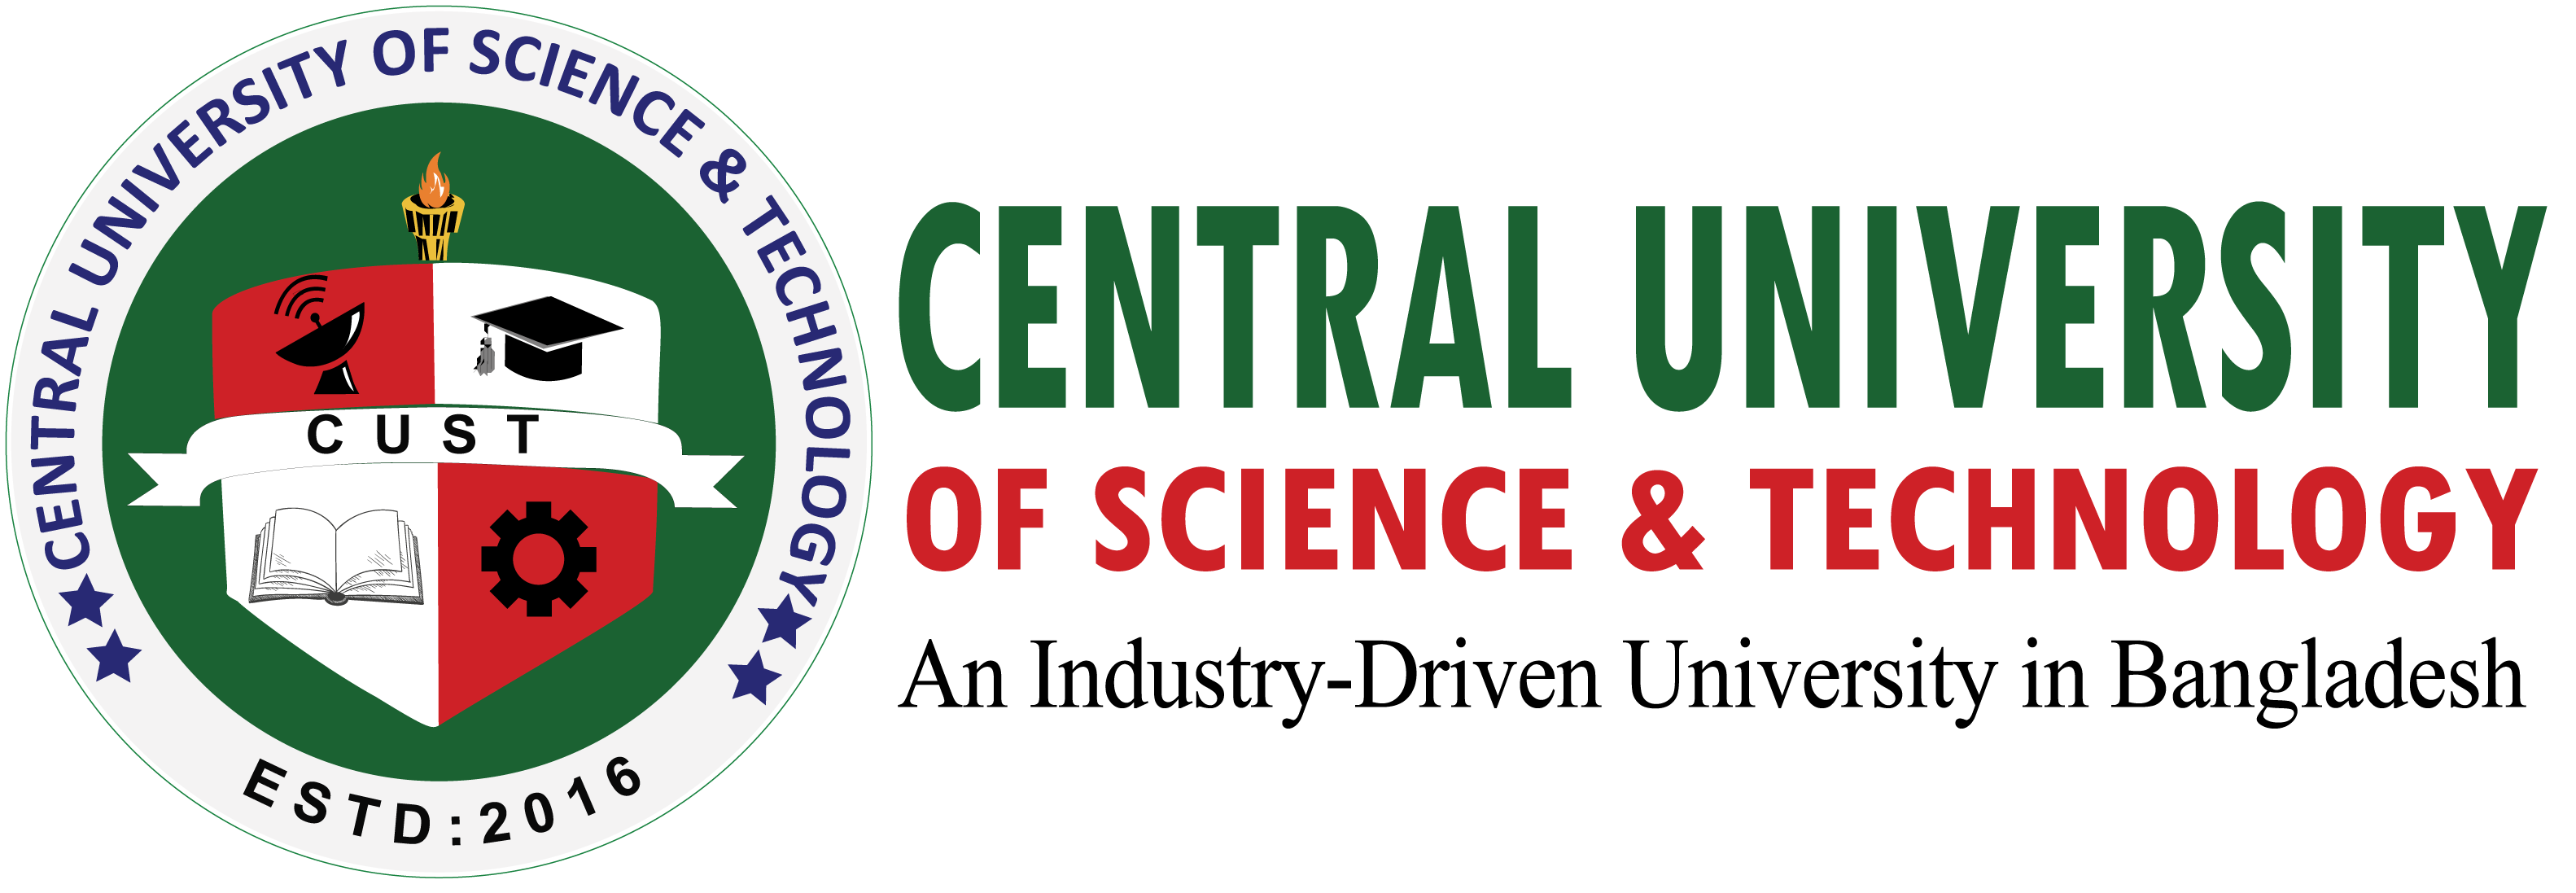 Academic Information & Policies - Central University of Science & Technology